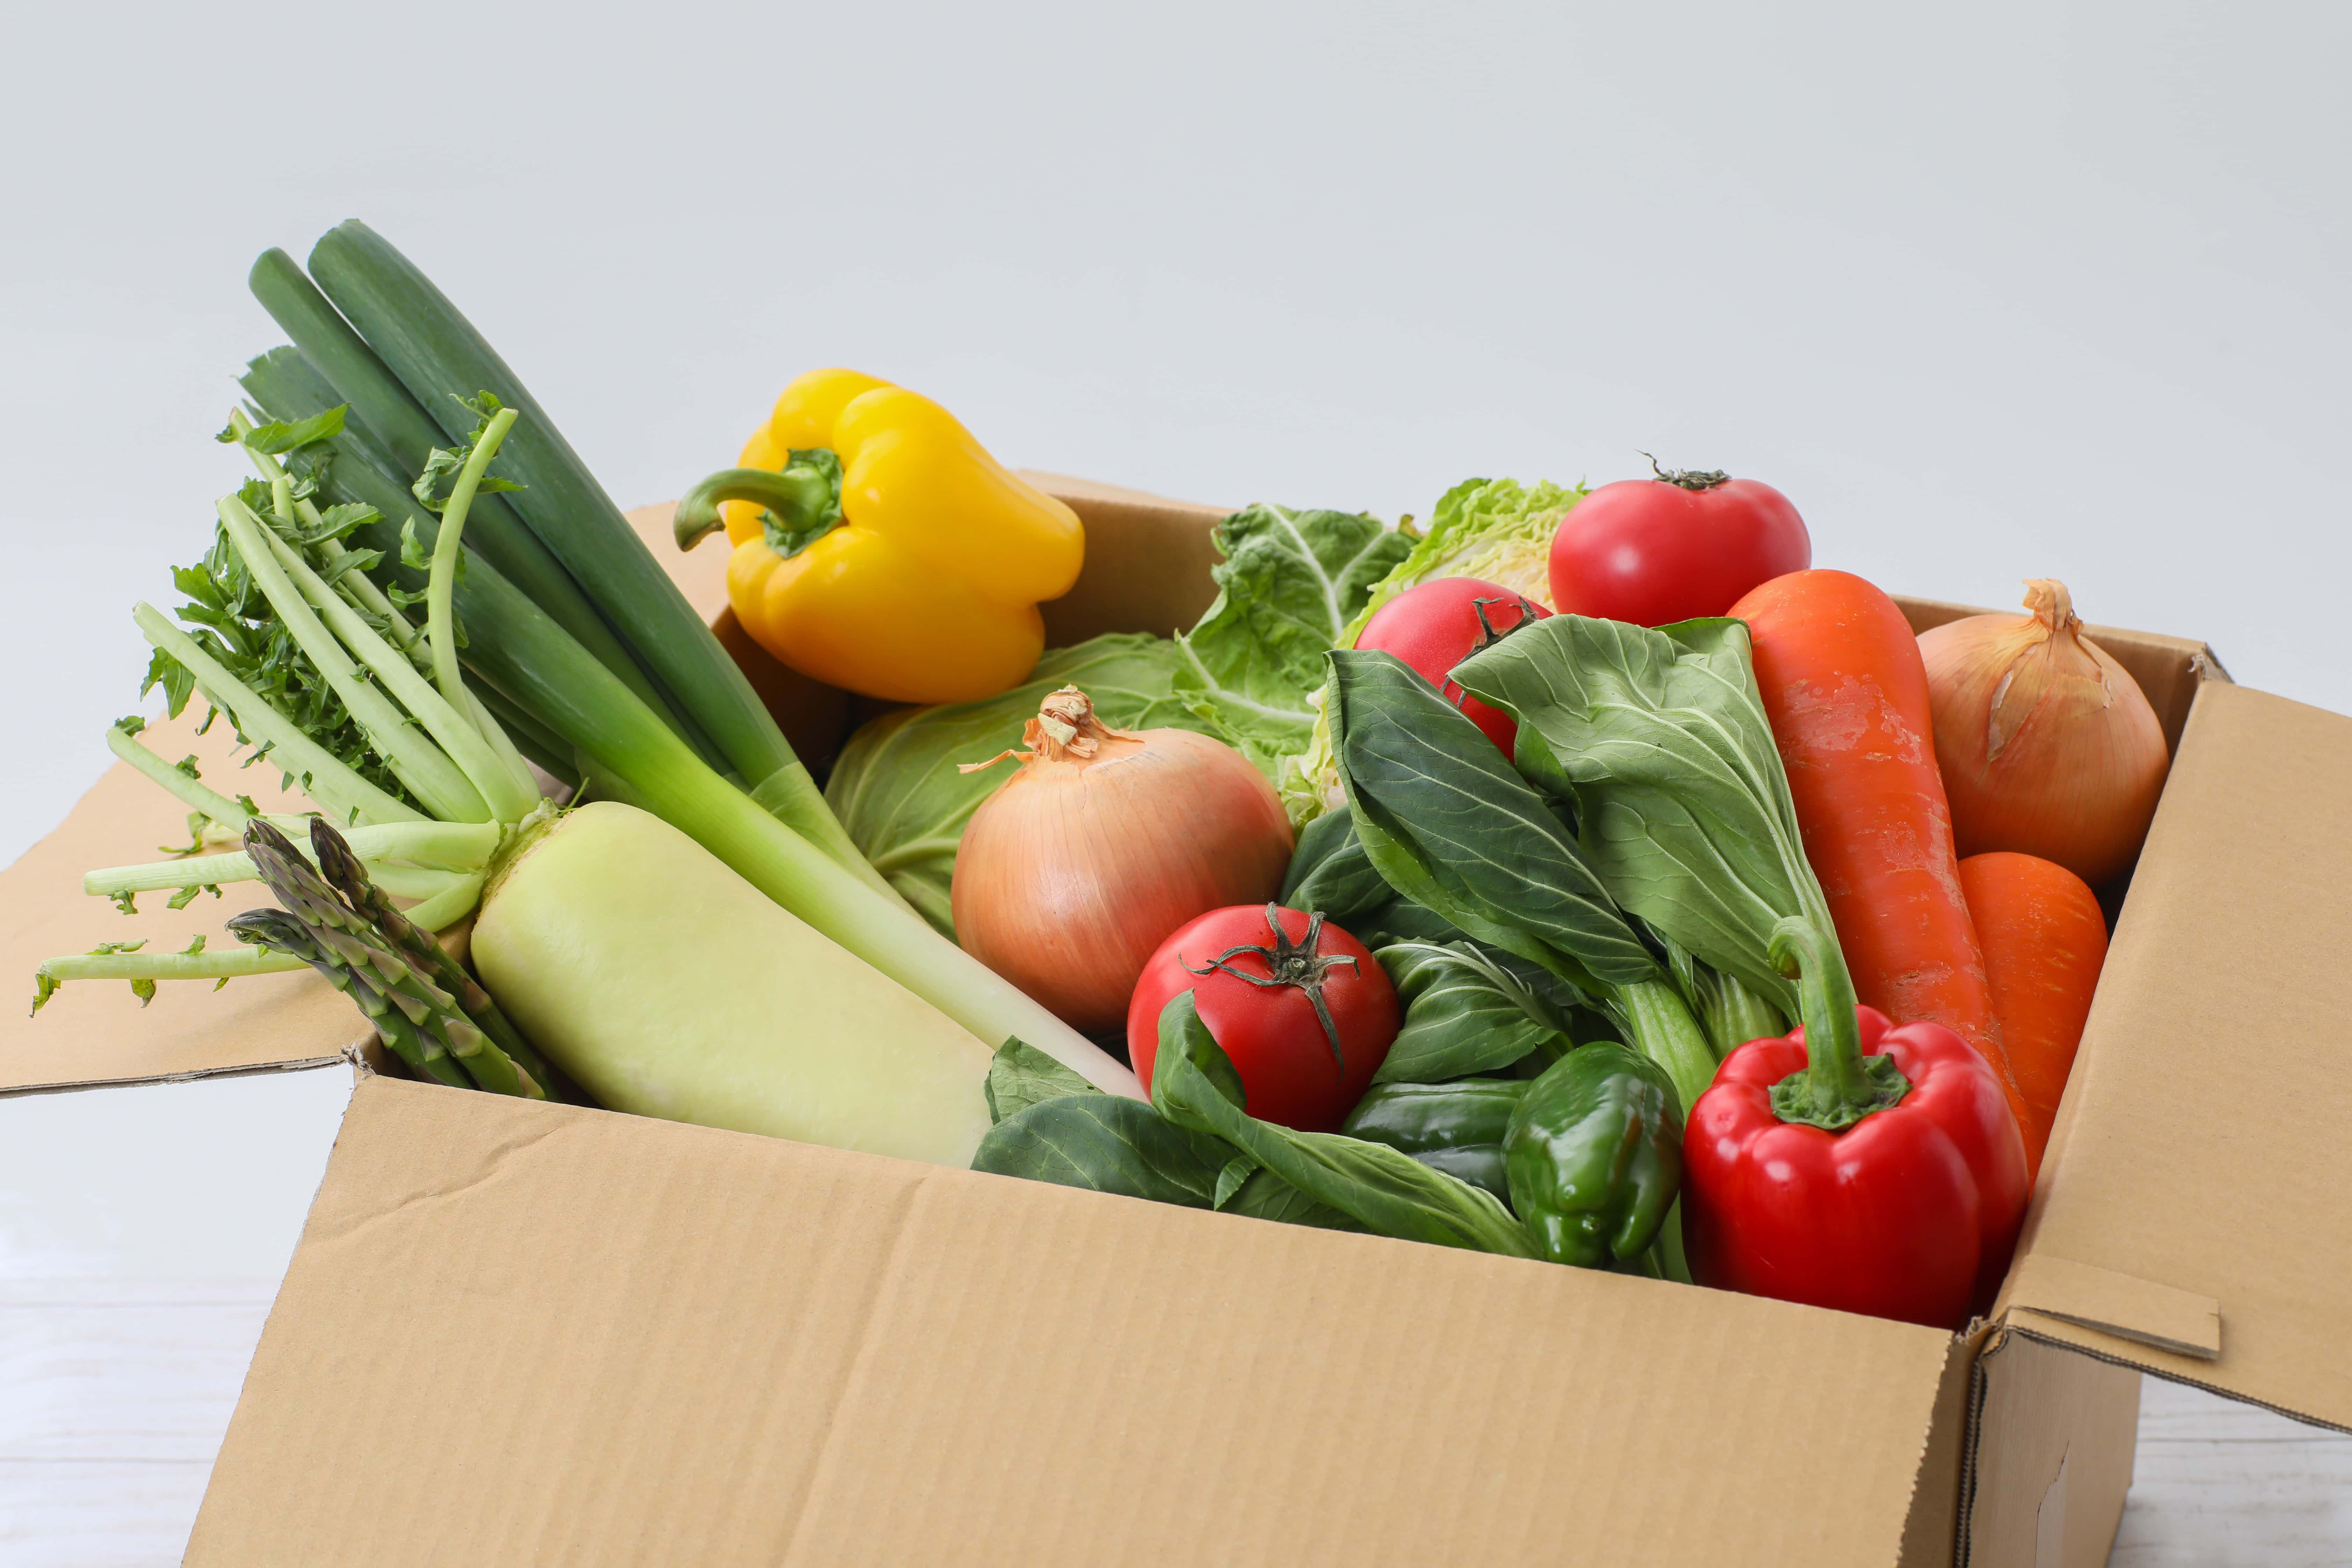 vegetables-which-corrugated-cardboard